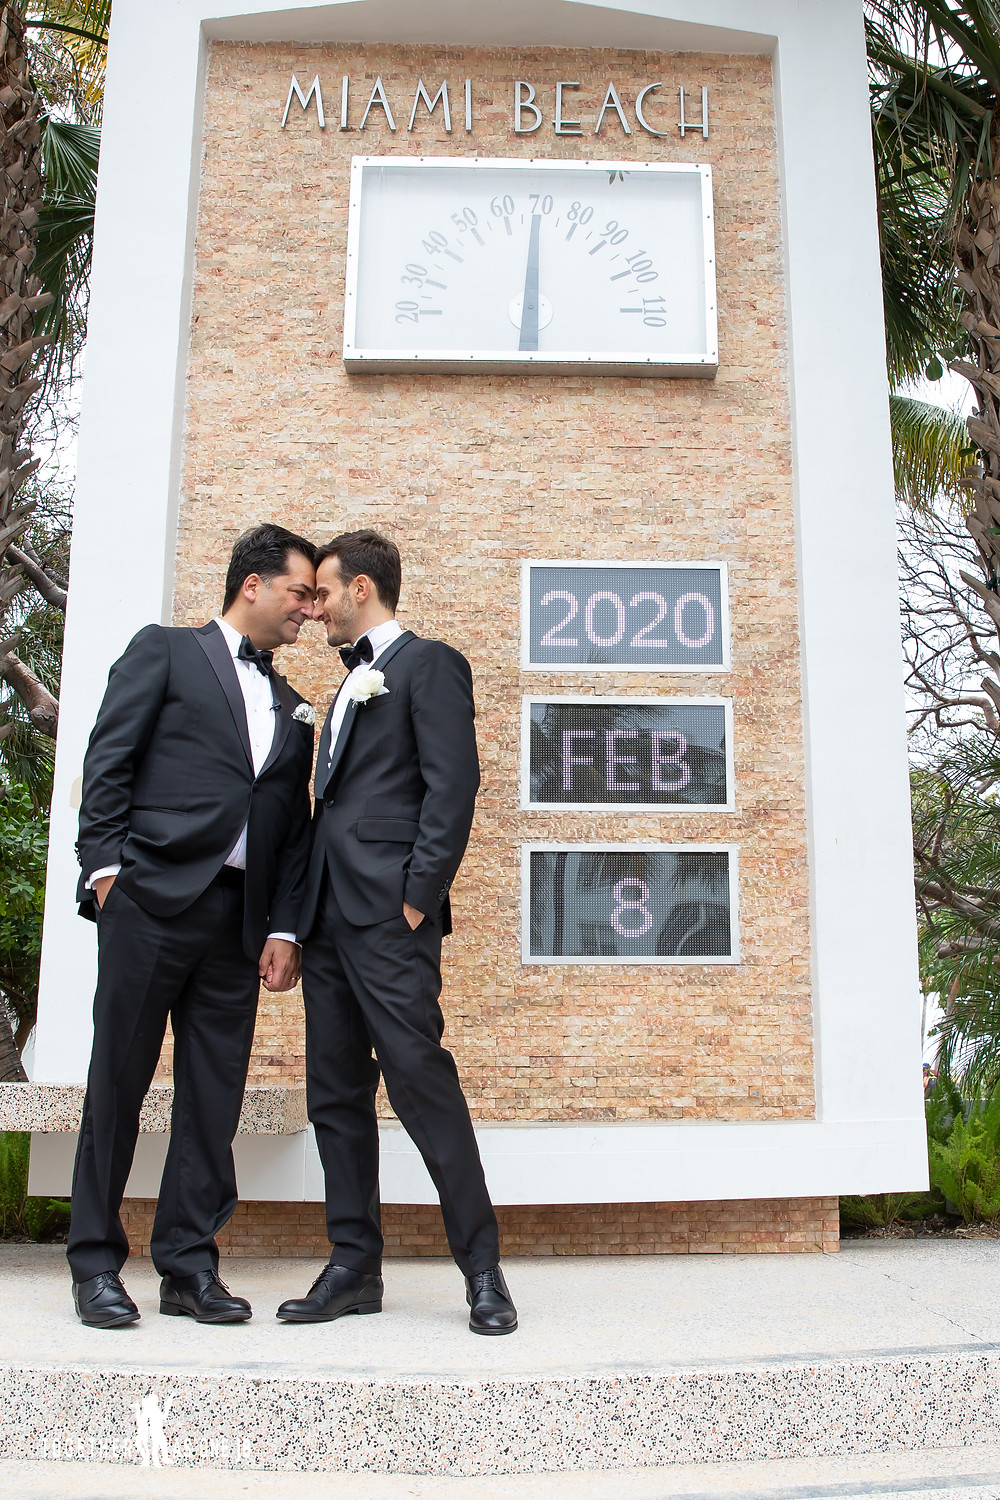 Grooms hold hands with foreheads touching while standing in front of famous Miami Beach sign of date and temperature in South Beach Miami